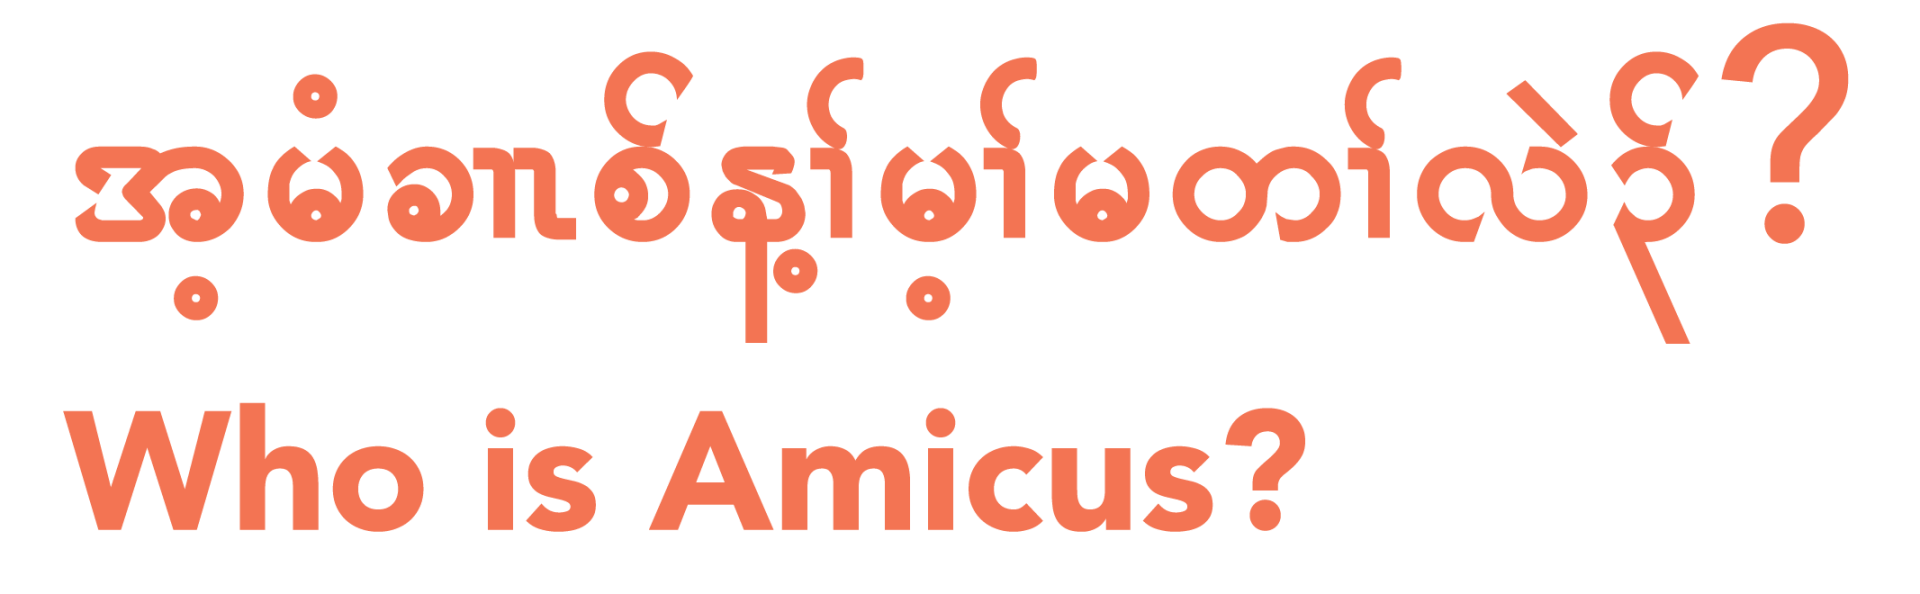 Who is Amicus?